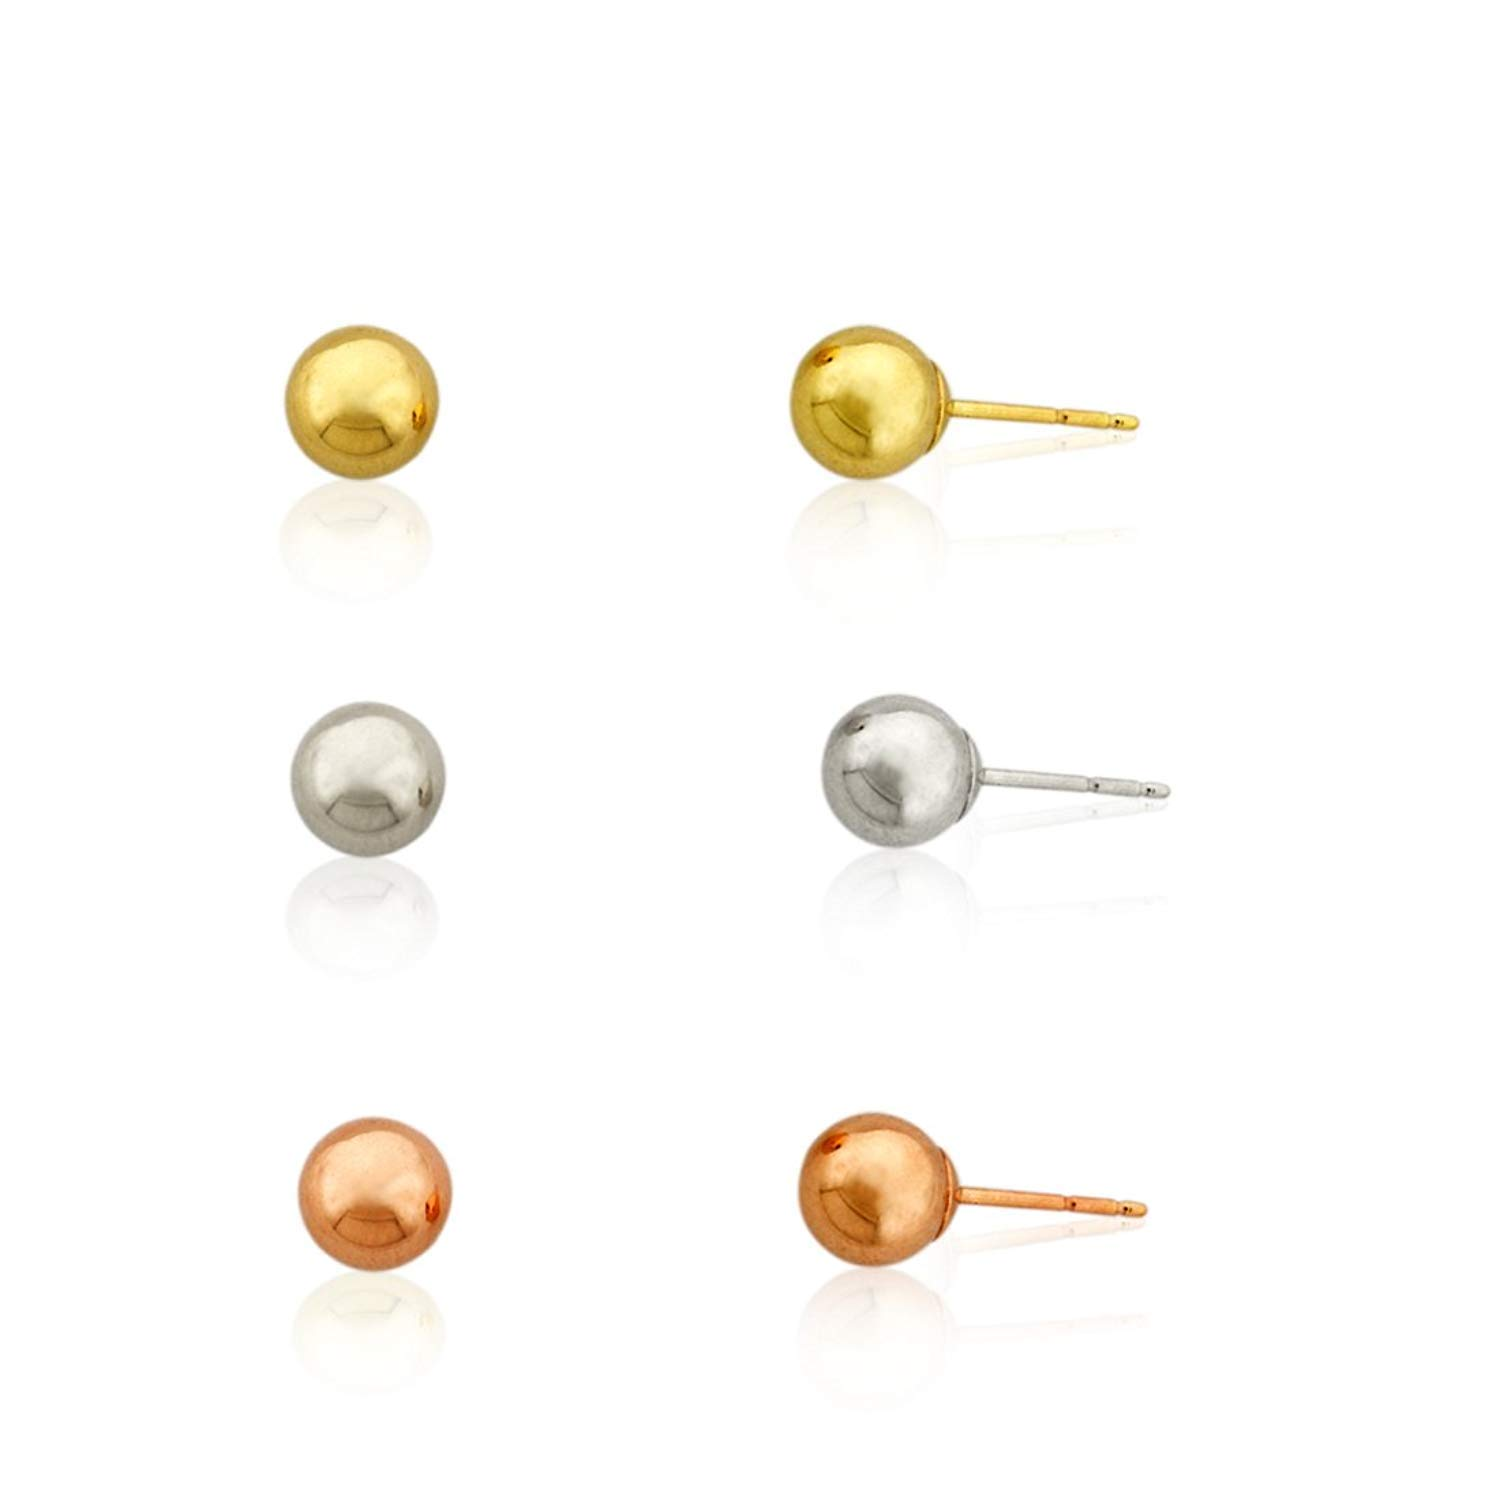 3-Pair 10K Yellow, White, and Rose Gold Three Color Polished Ball Stud Earrings Set